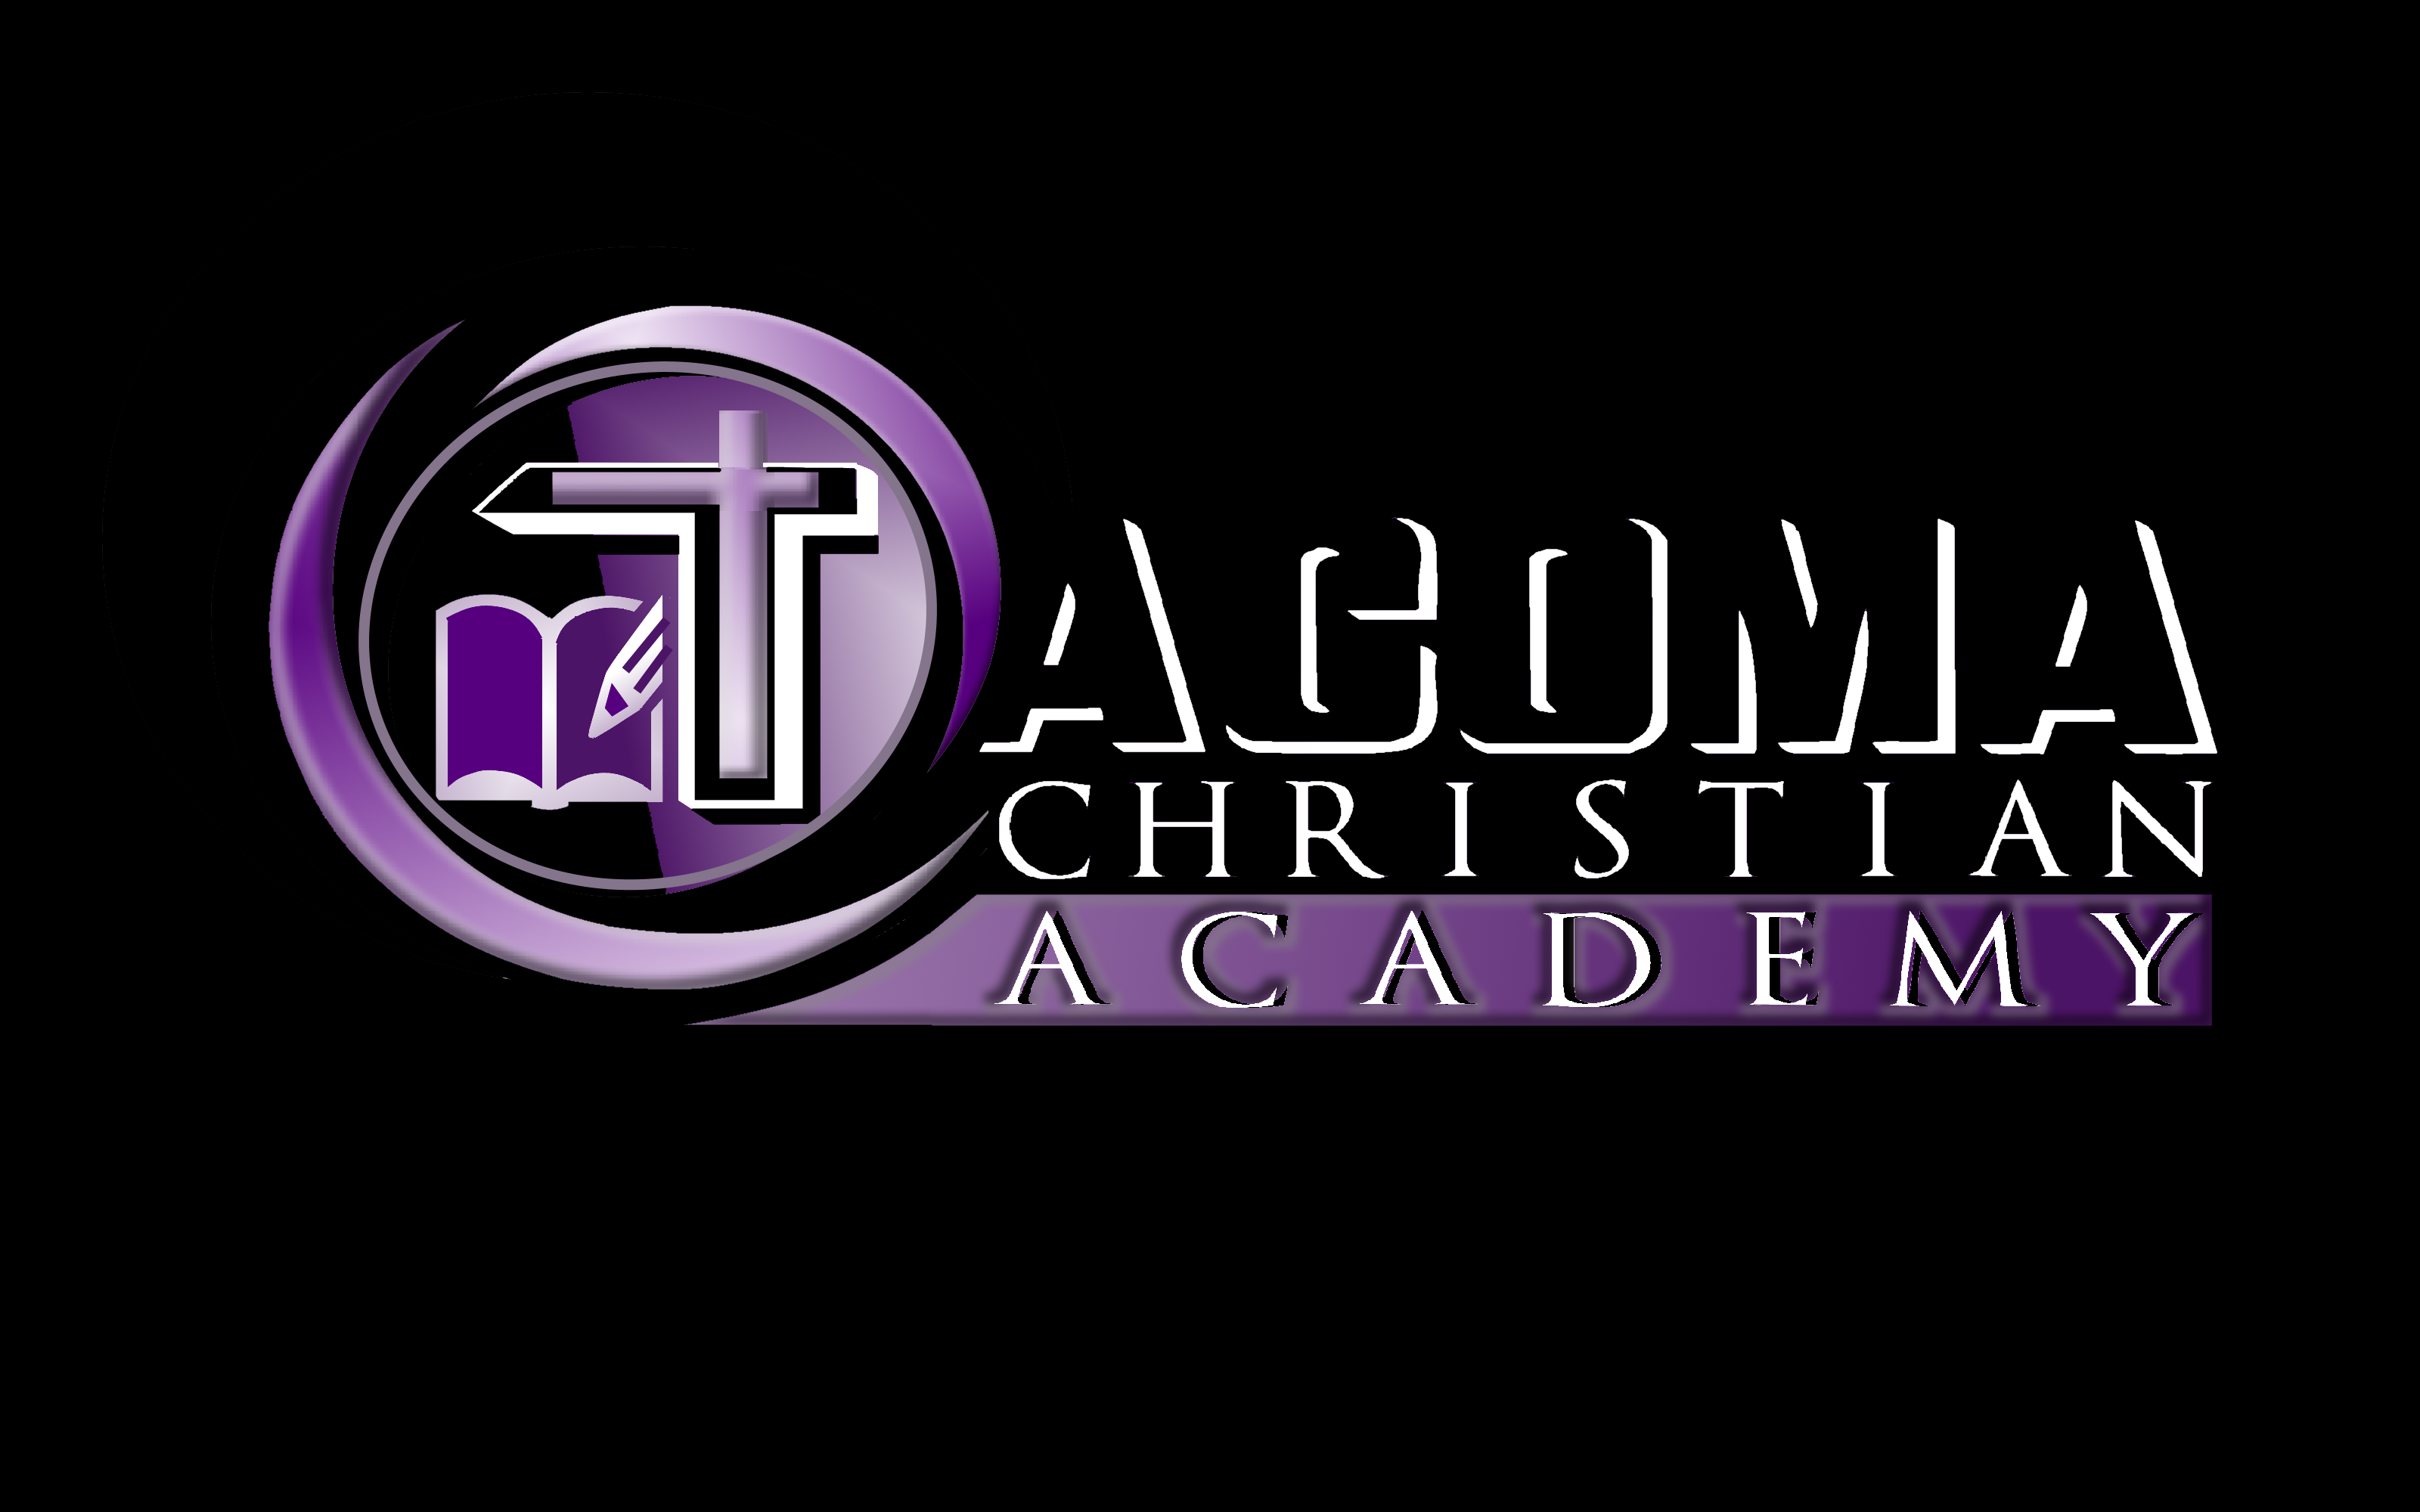 Logo Design by Roberto Bassi - Entry No. 110 in the Logo Design Contest Imaginative Logo Design for Tacoma Christian Academy.